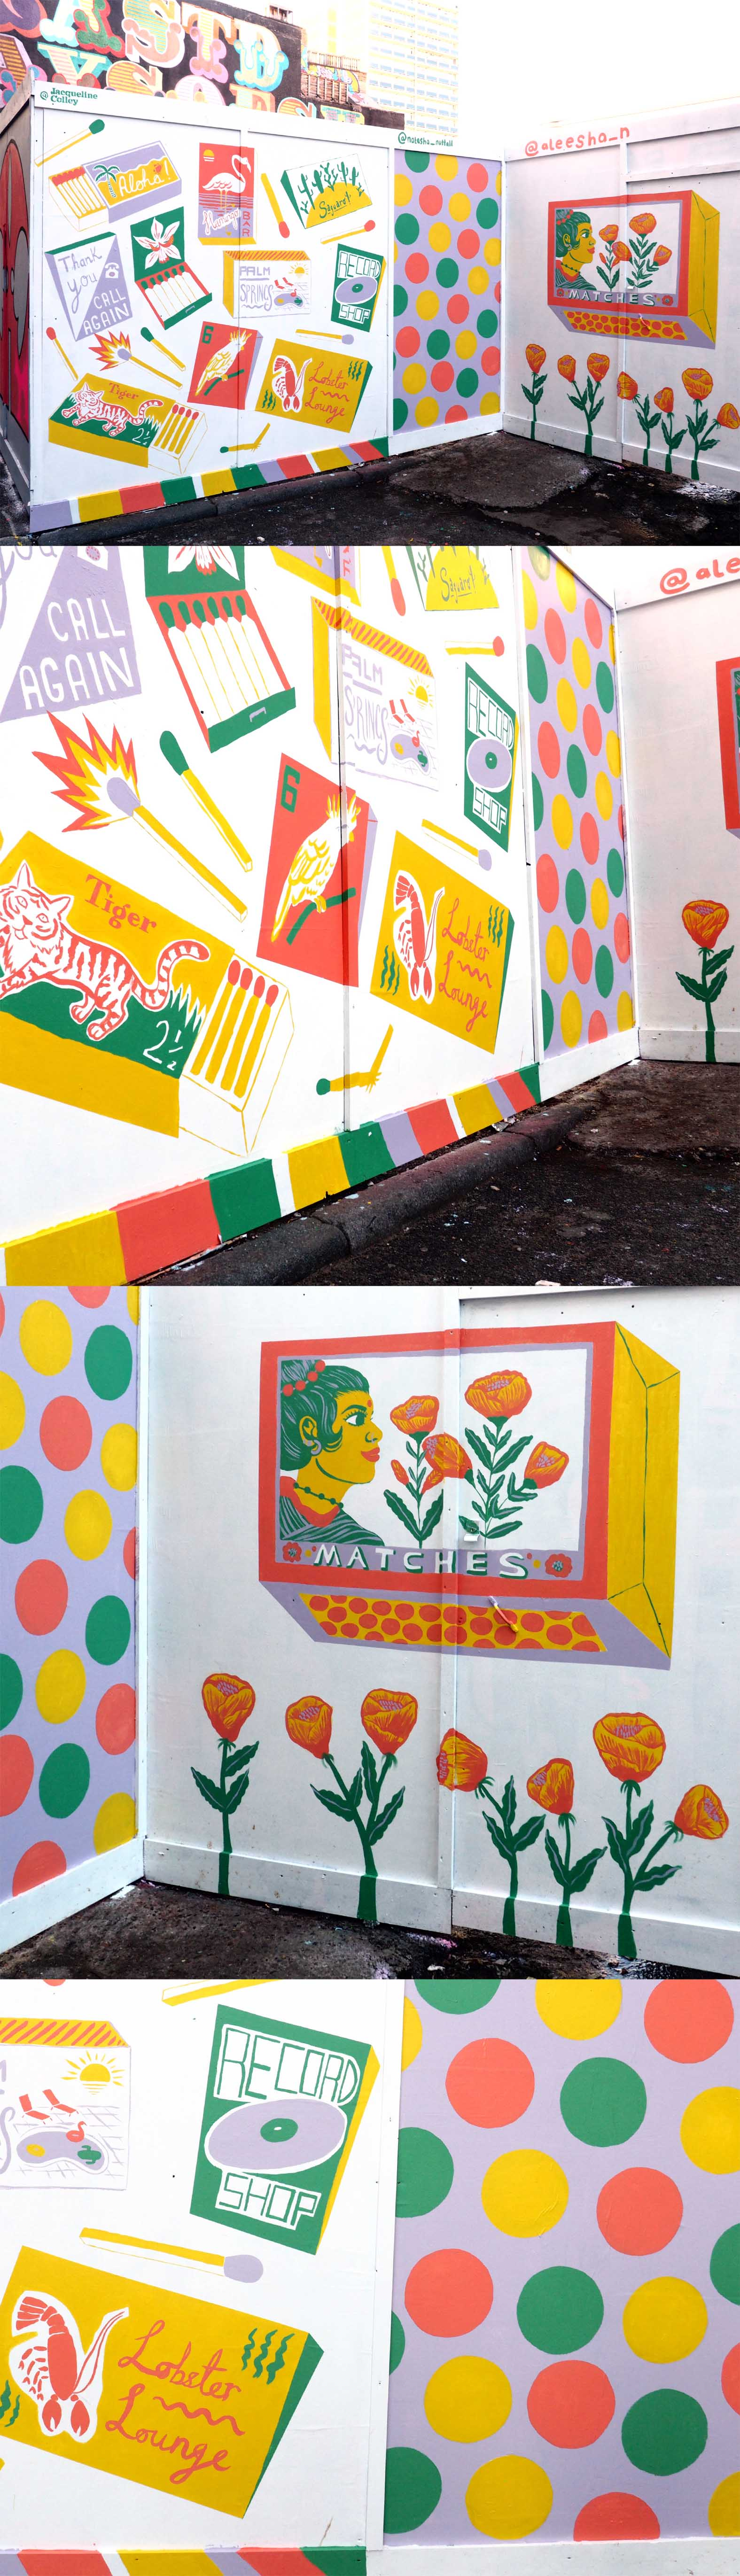 Matchbook-Mural-Pin.jpg